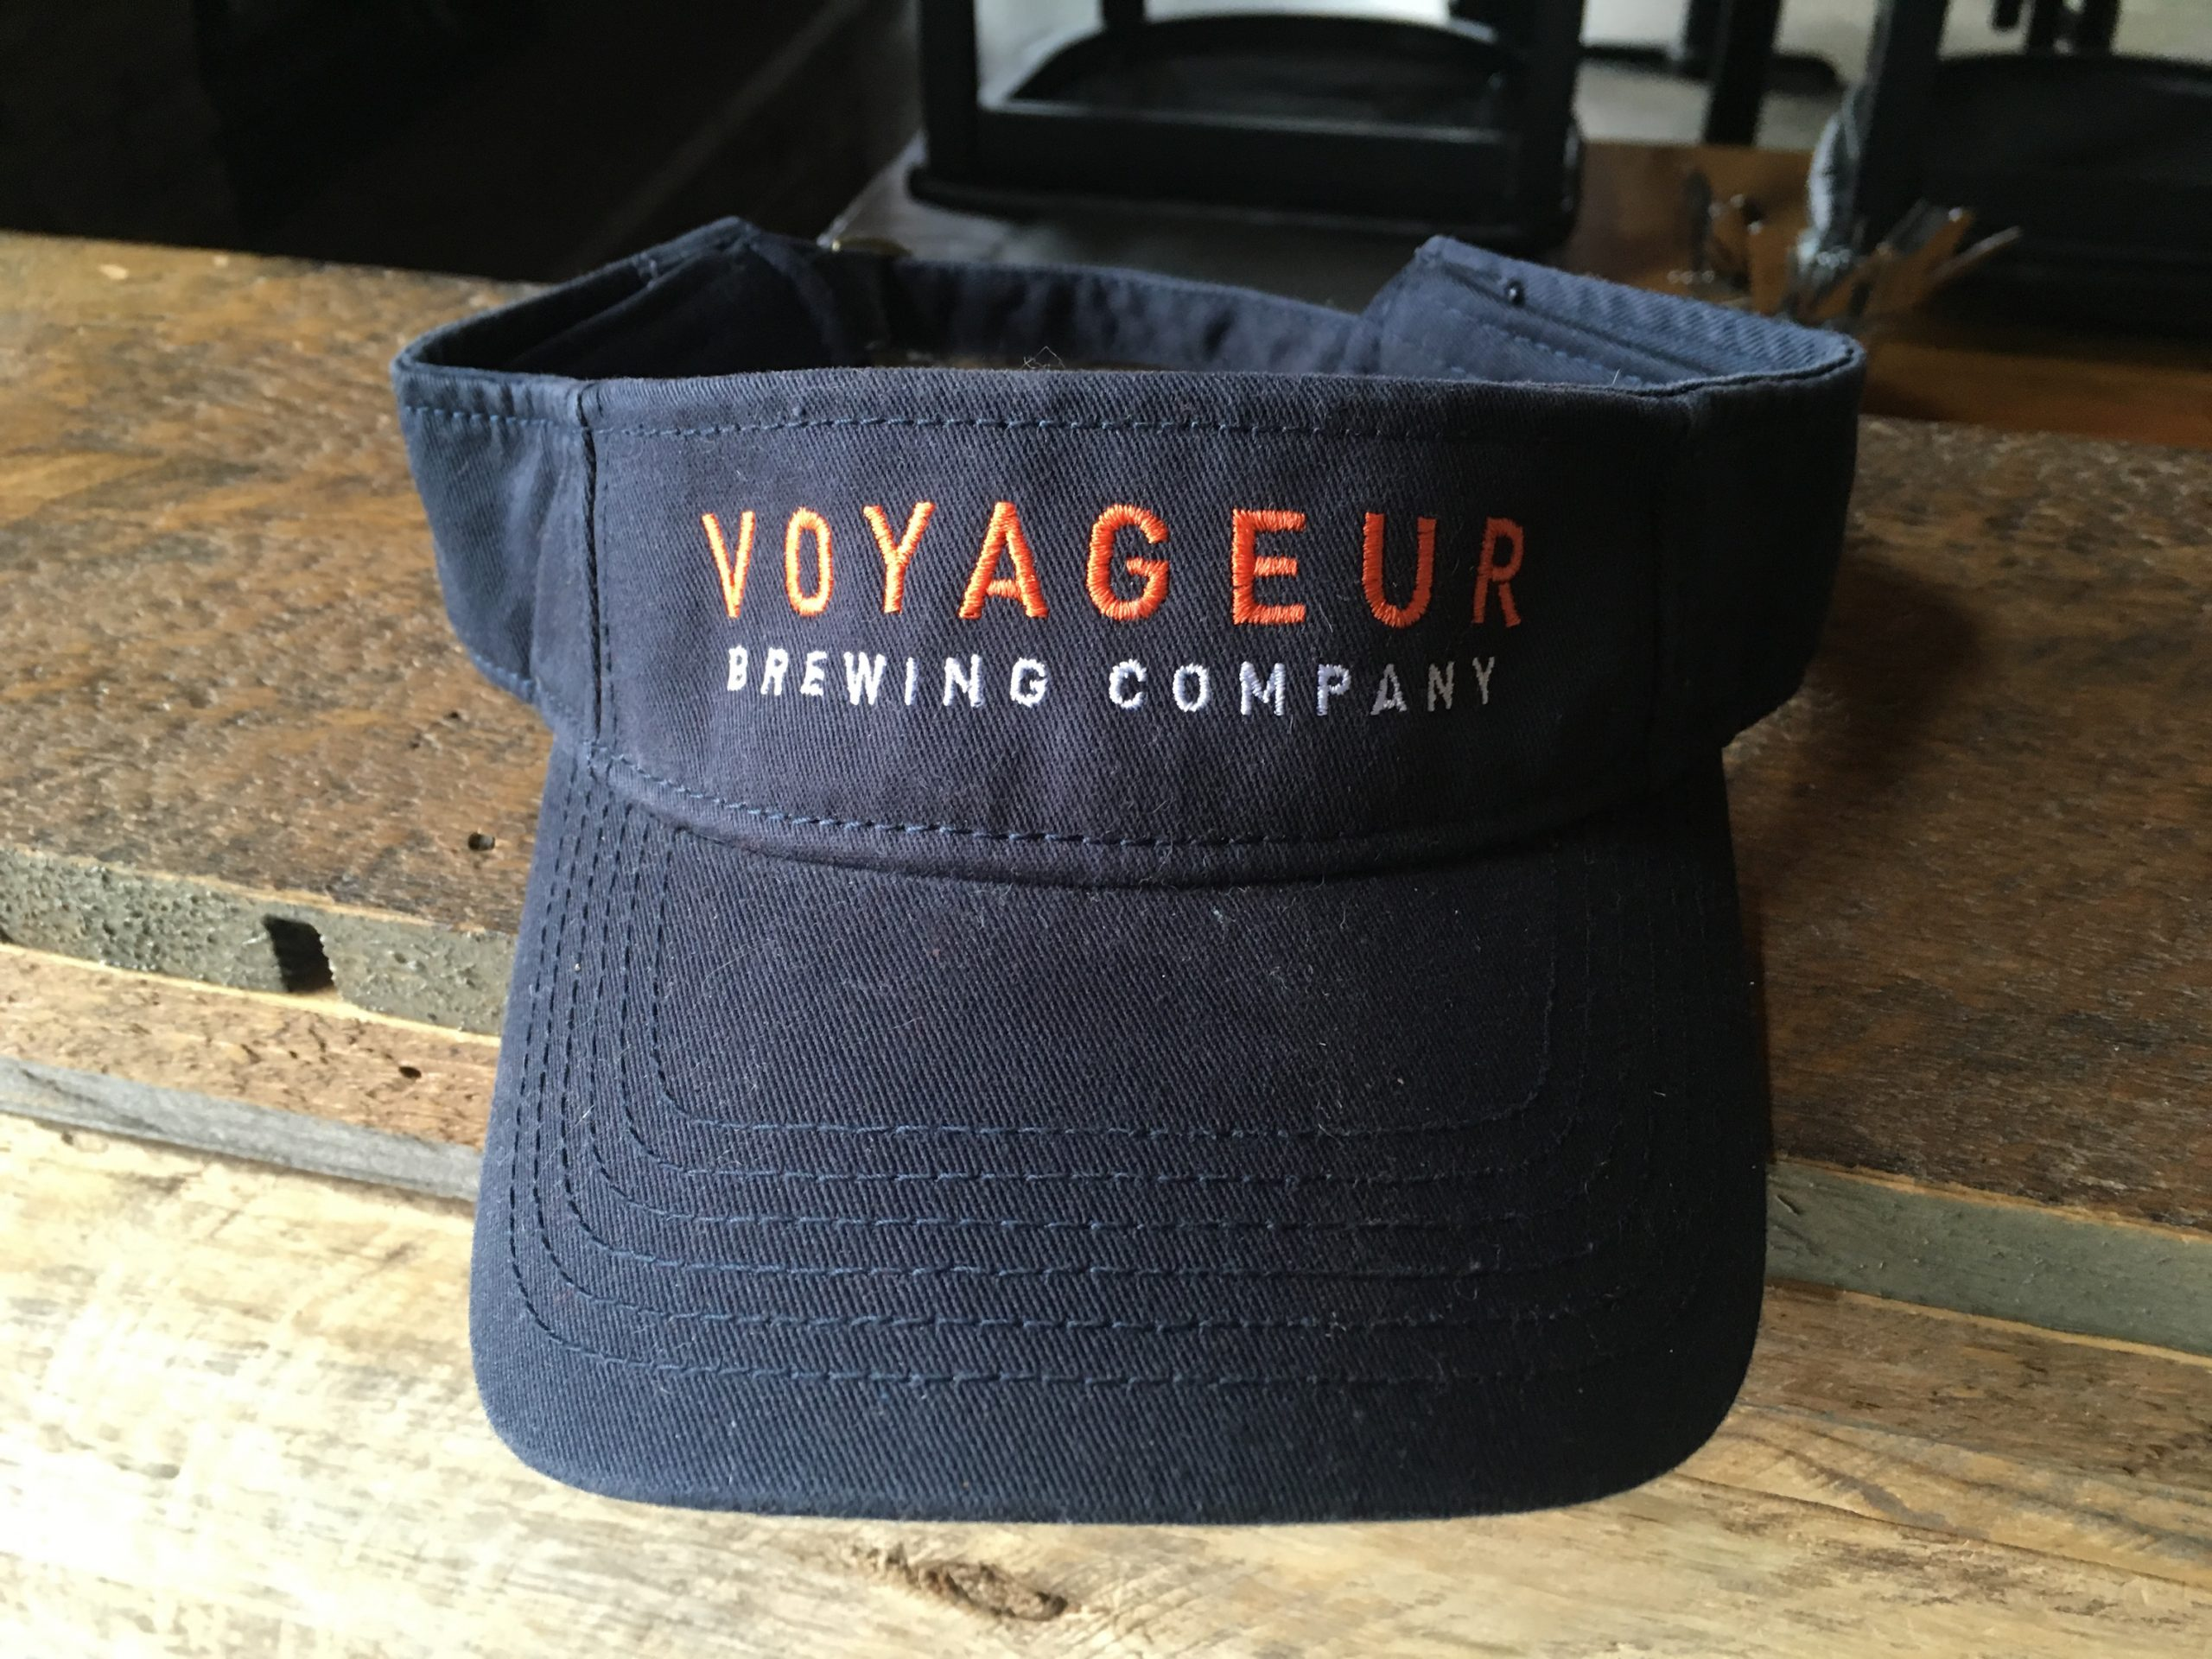 online shopping at Voyageur Brewing